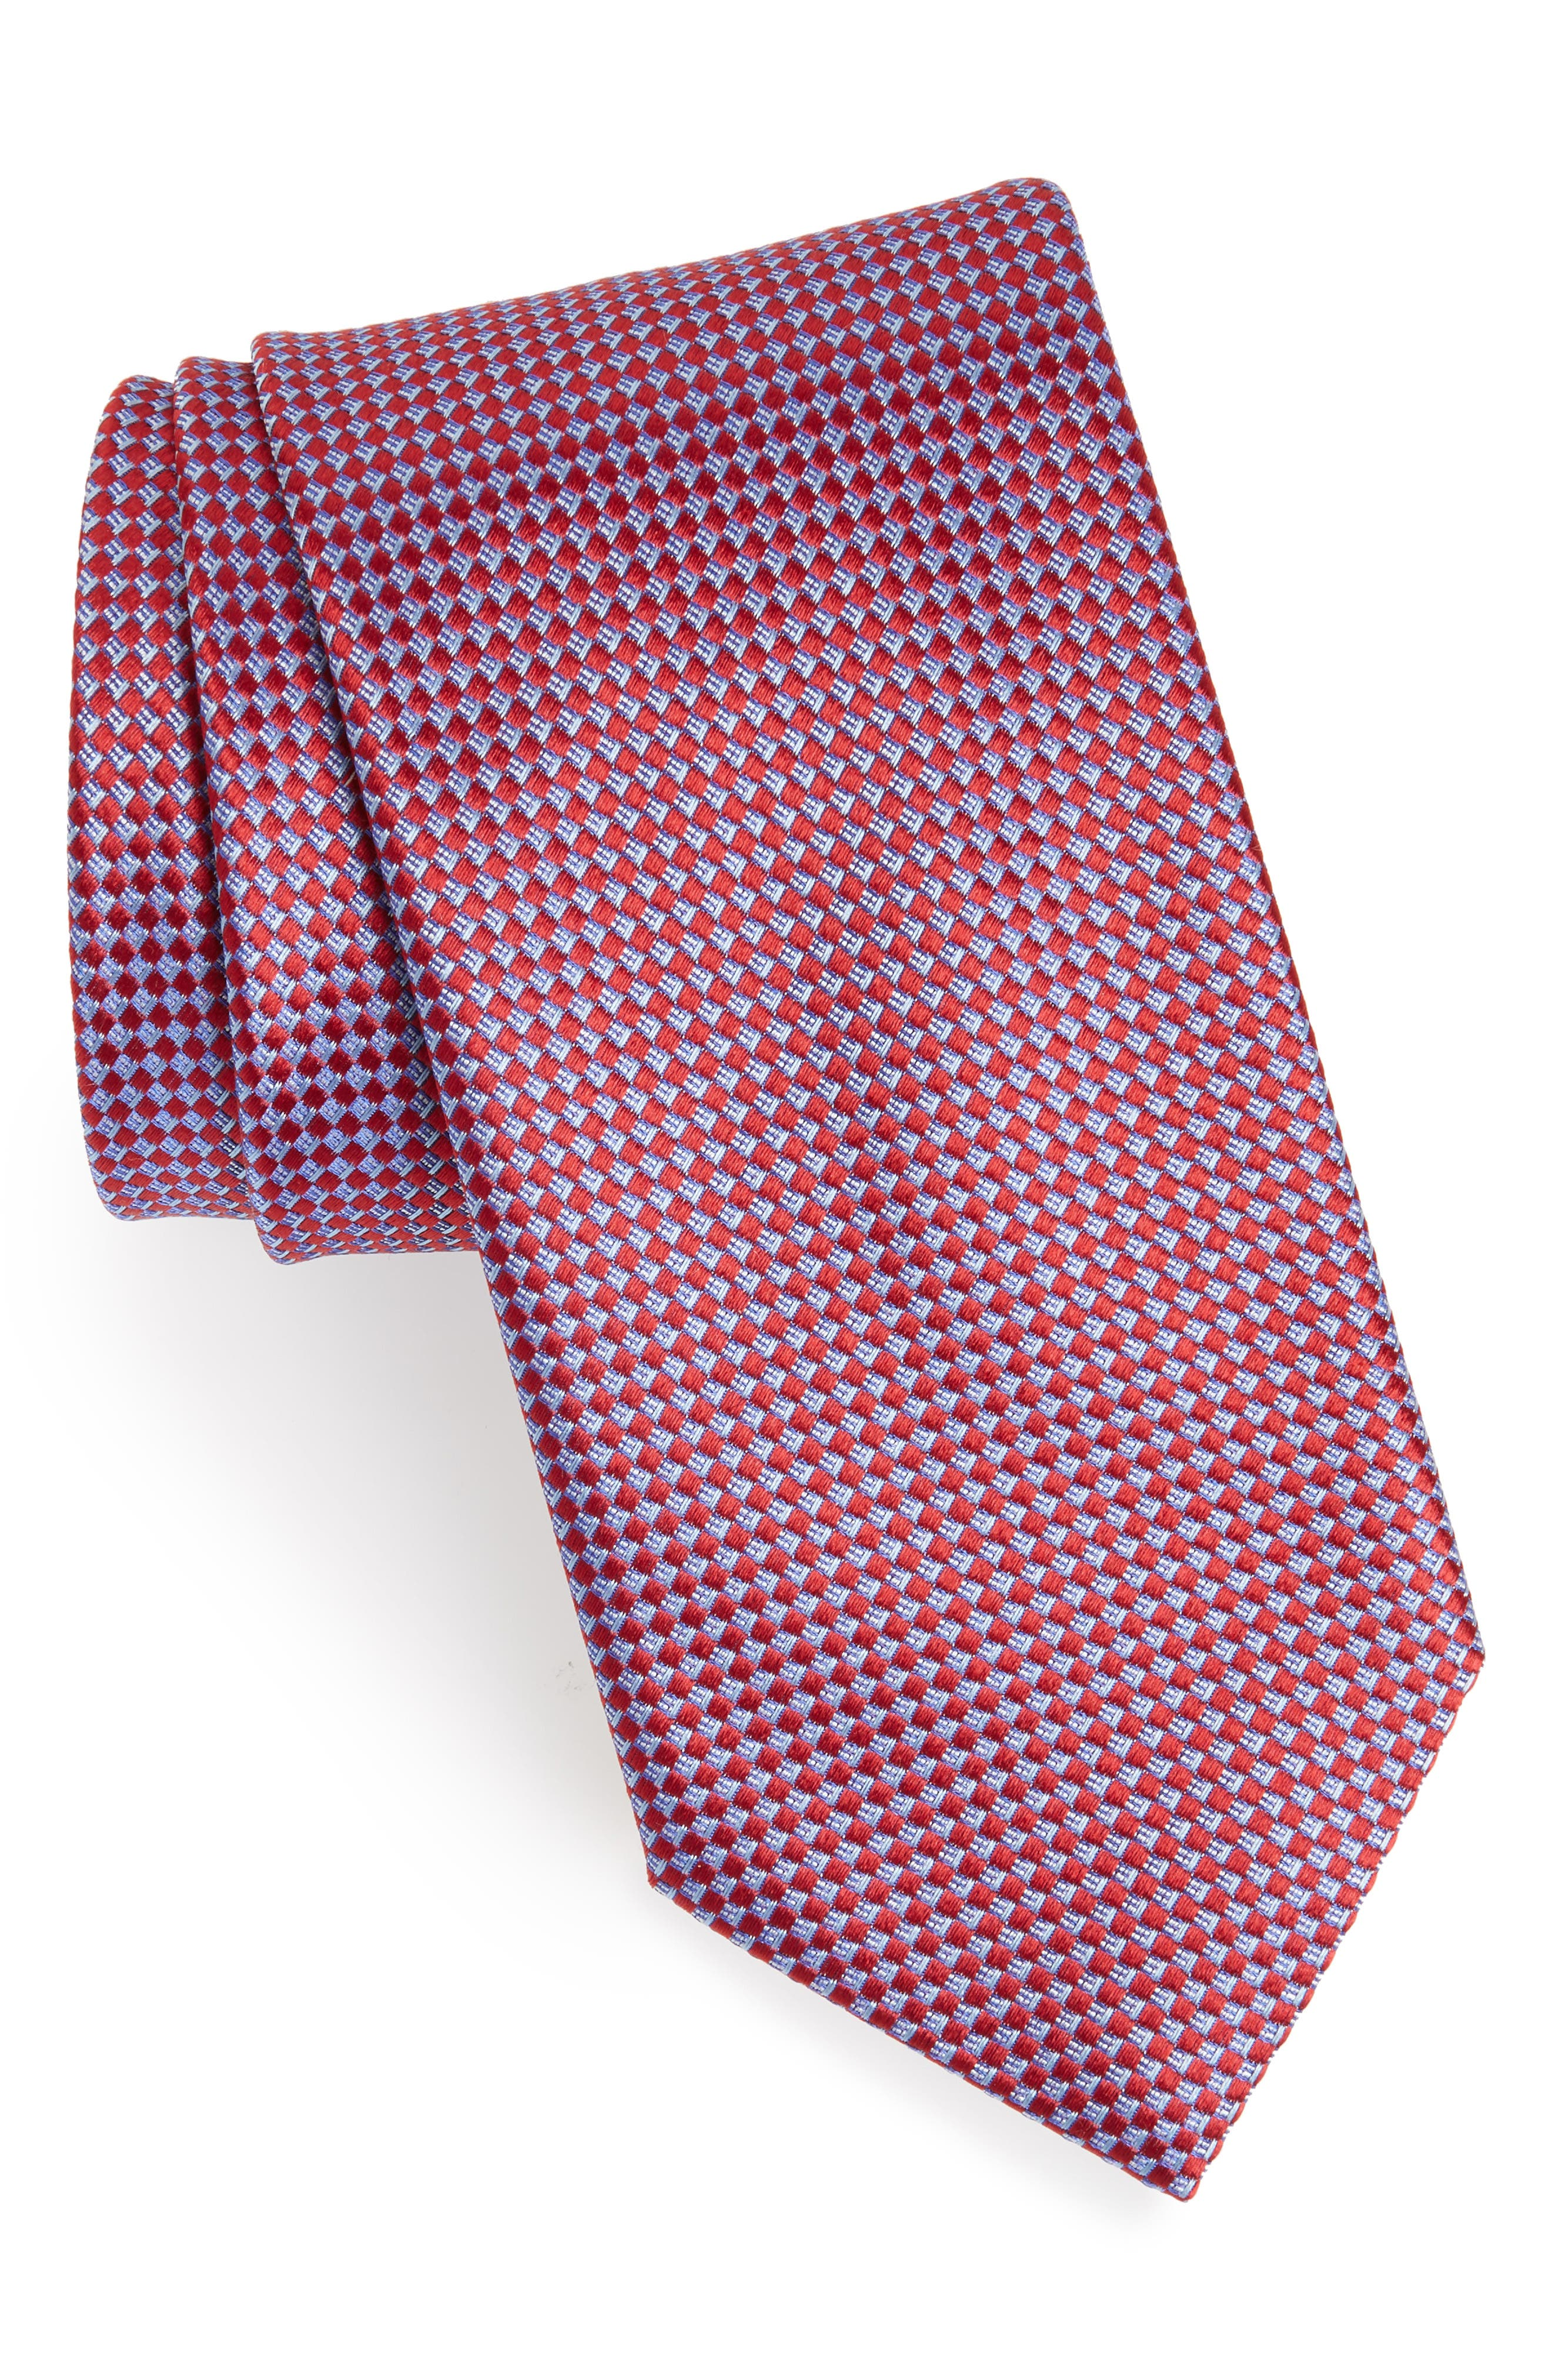 Geometric Silk Tie,                             Main thumbnail 1, color,                             RED/ BLUE